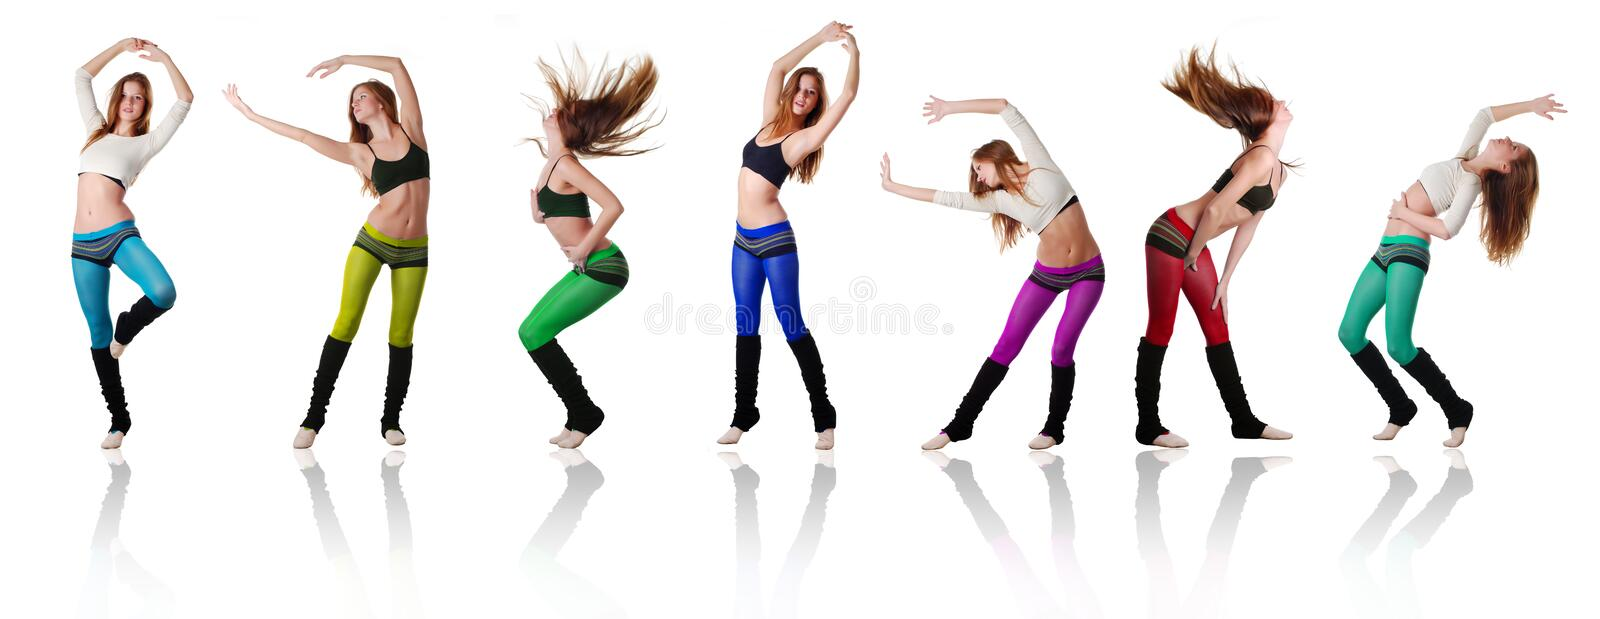 Women dancers royalty free stock photography